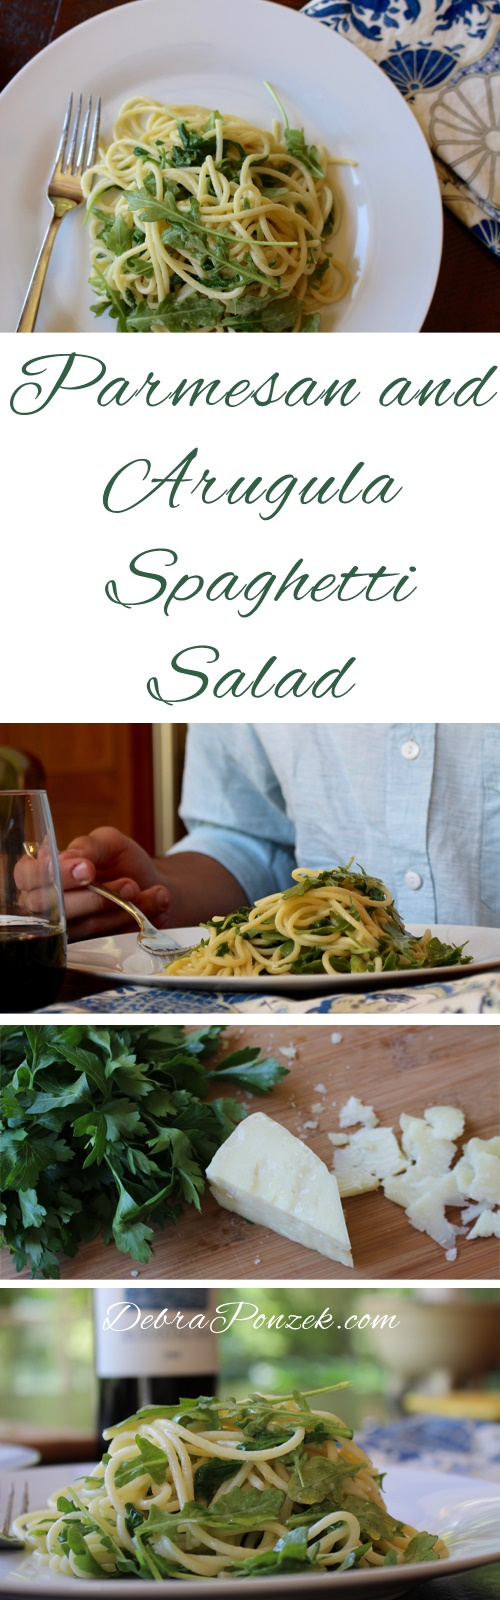 Adding the best spaghetti with arugula and Parmesan recipe makes for a quick and easy dish that can be done at the drop of a hat.